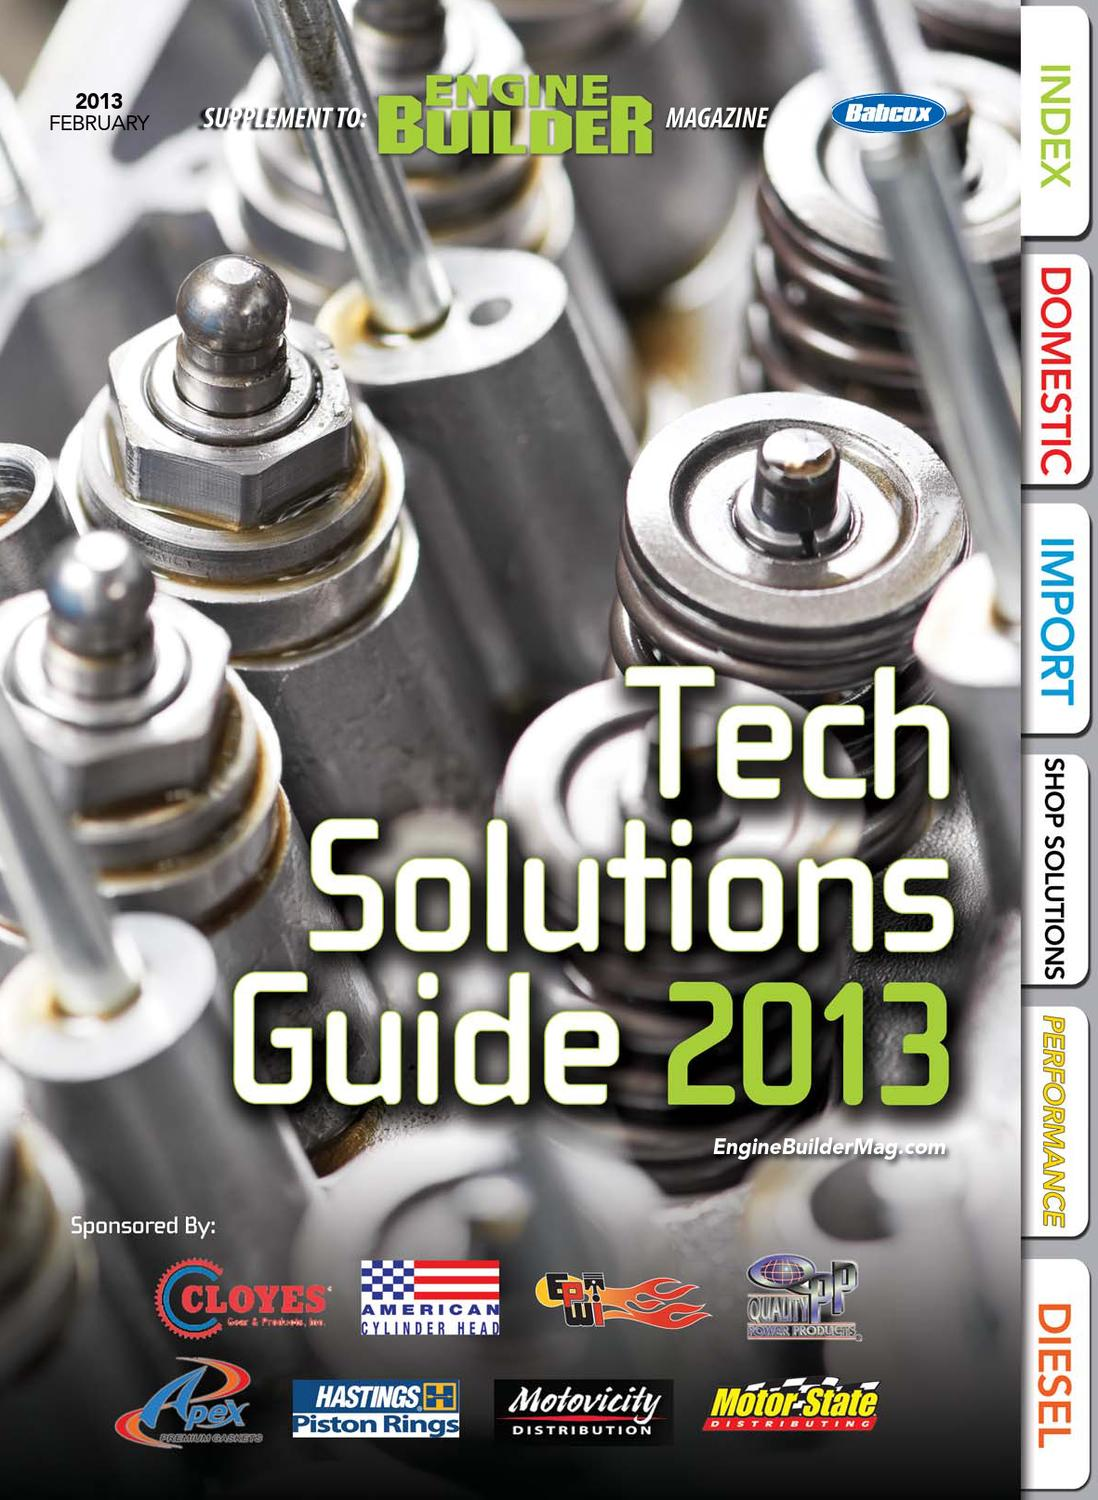 Engine Builder-Tech Solutions Guide 2013 by Babcox Media - issuu